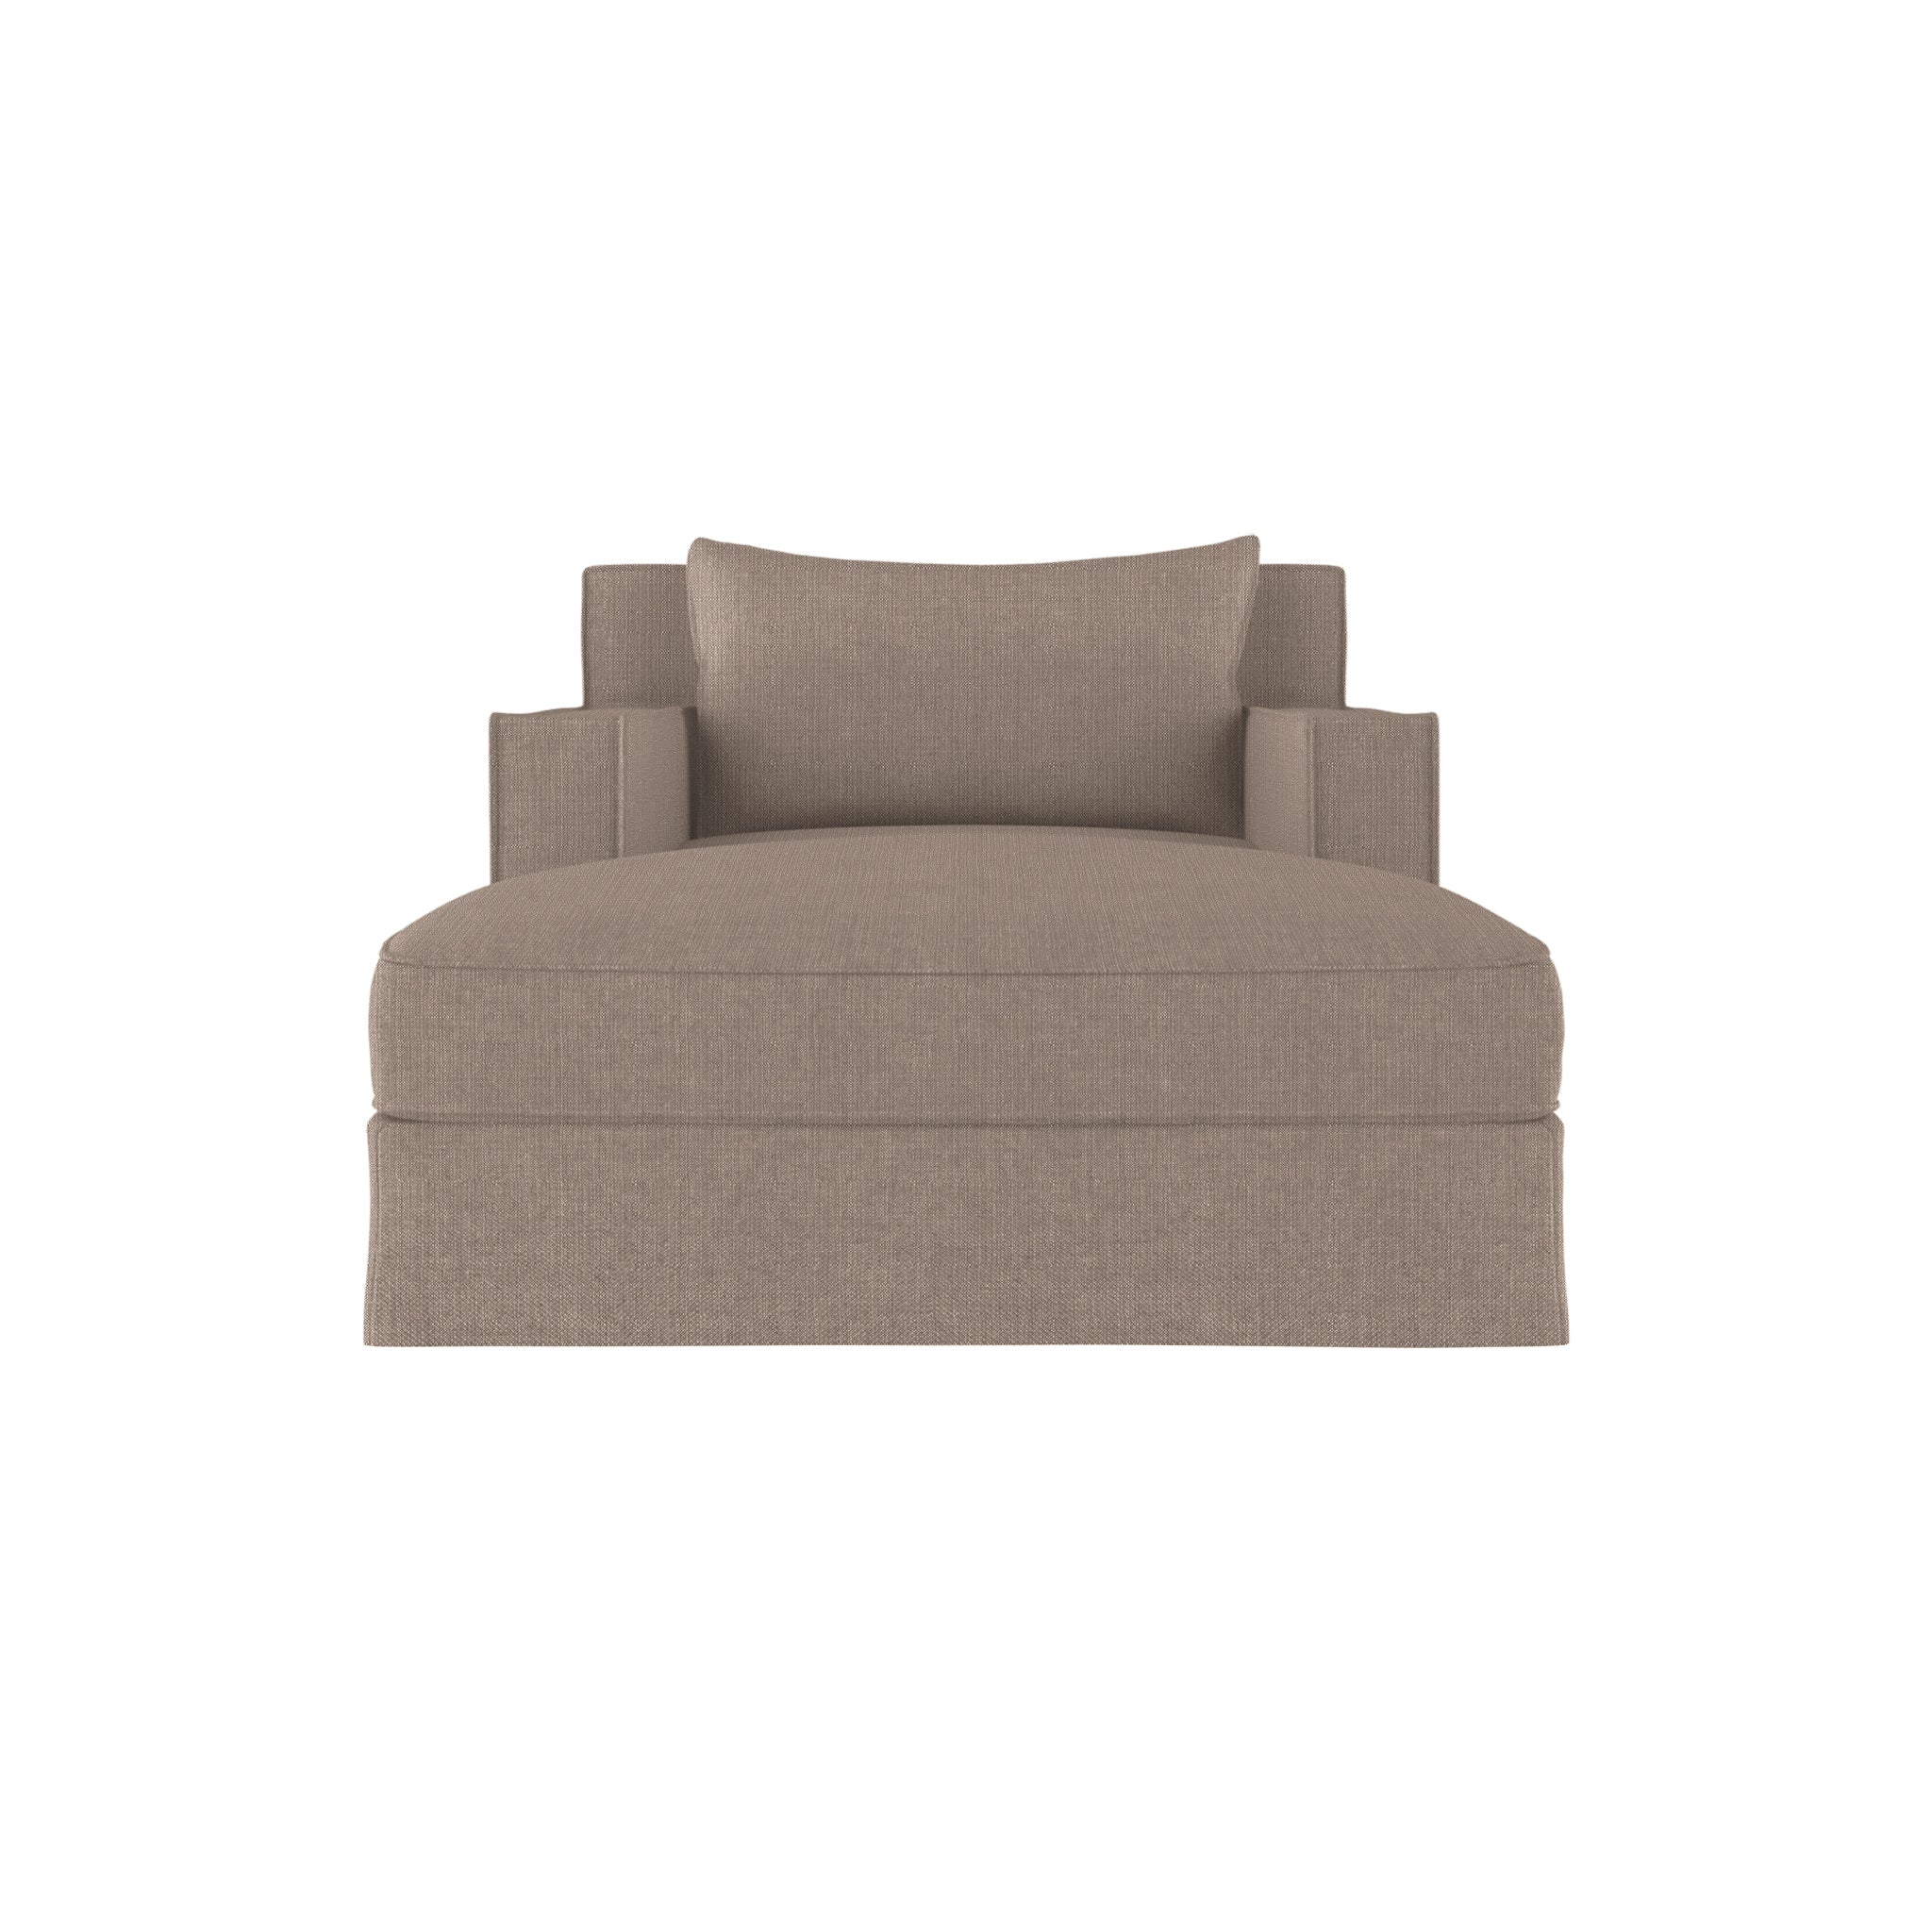 Mulberry Chaise - Pumice Box Weave Linen